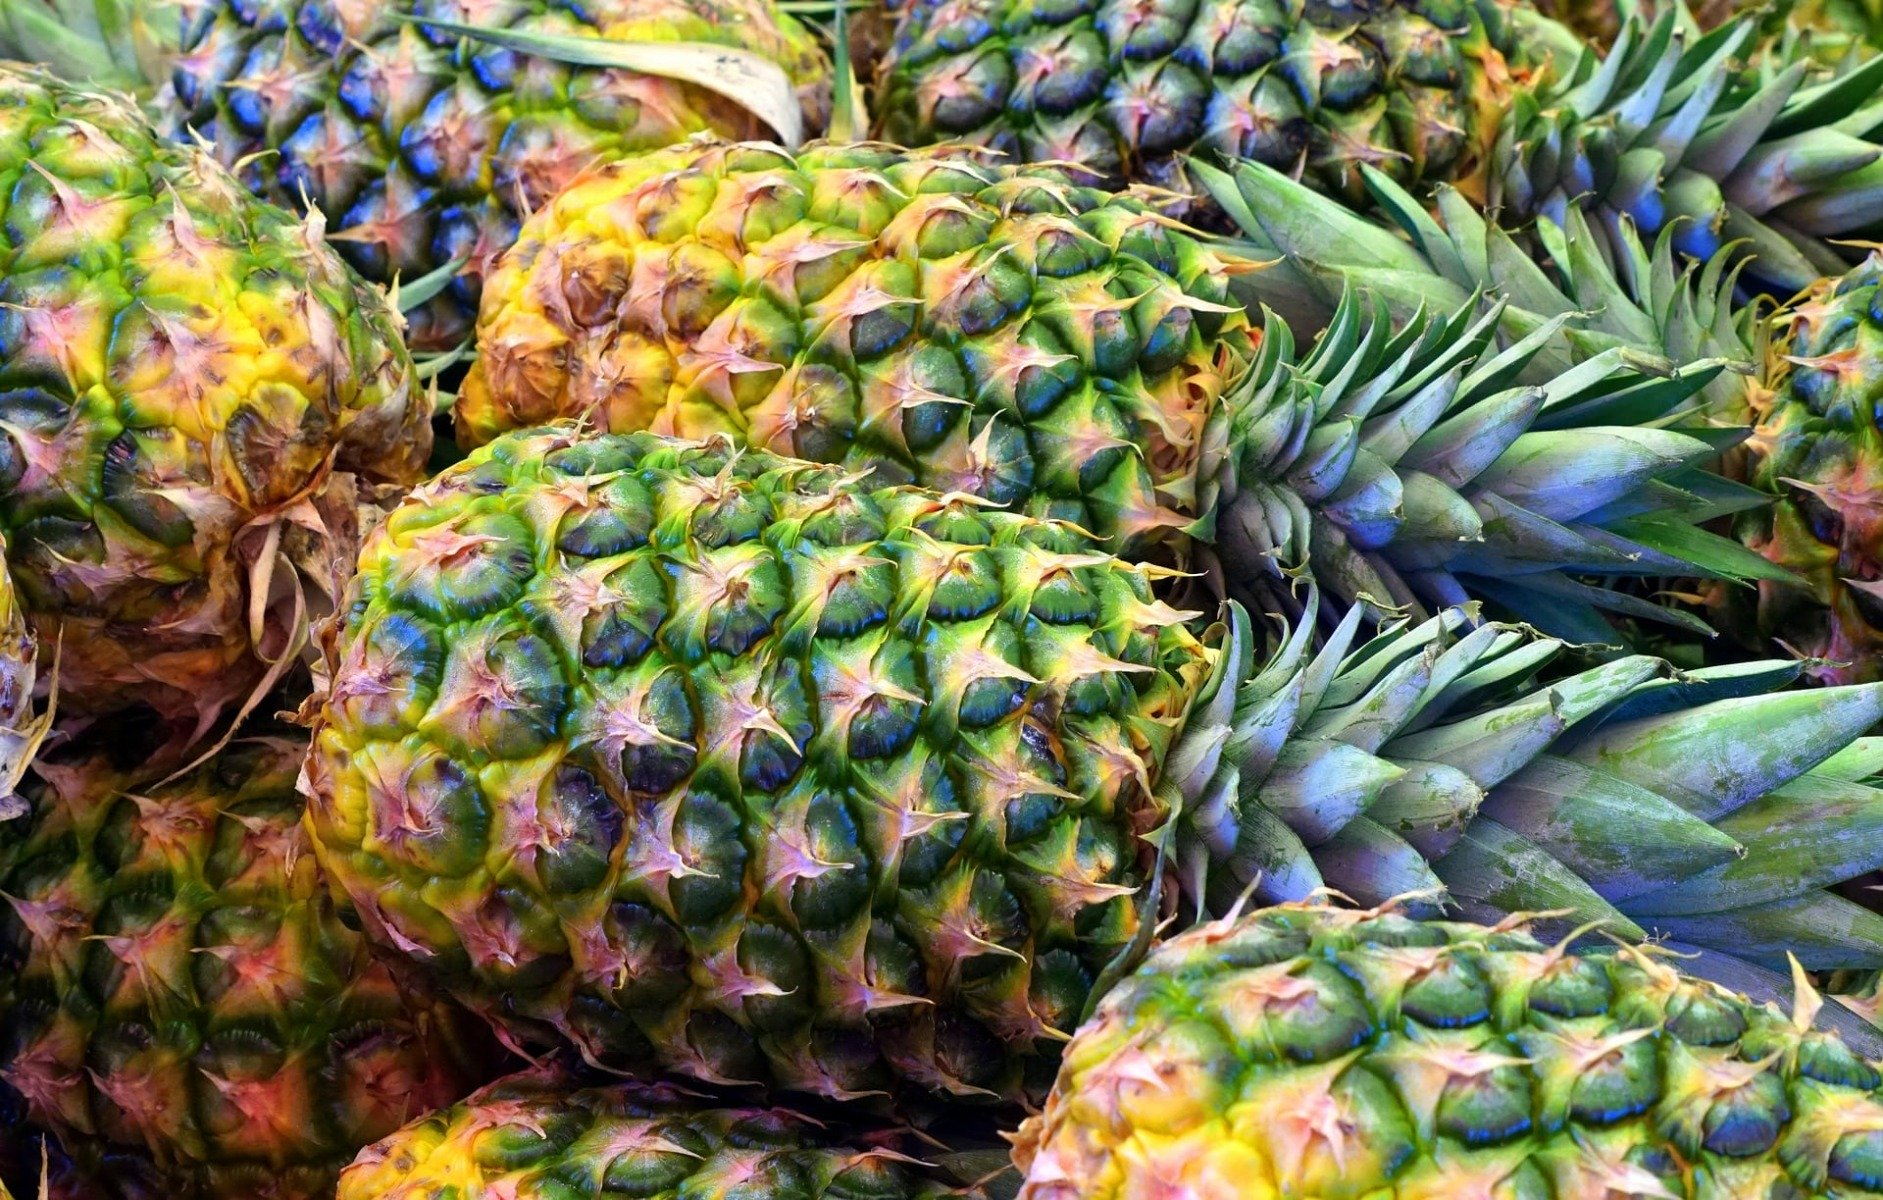 Foods containing digestive enzymes - pineapple